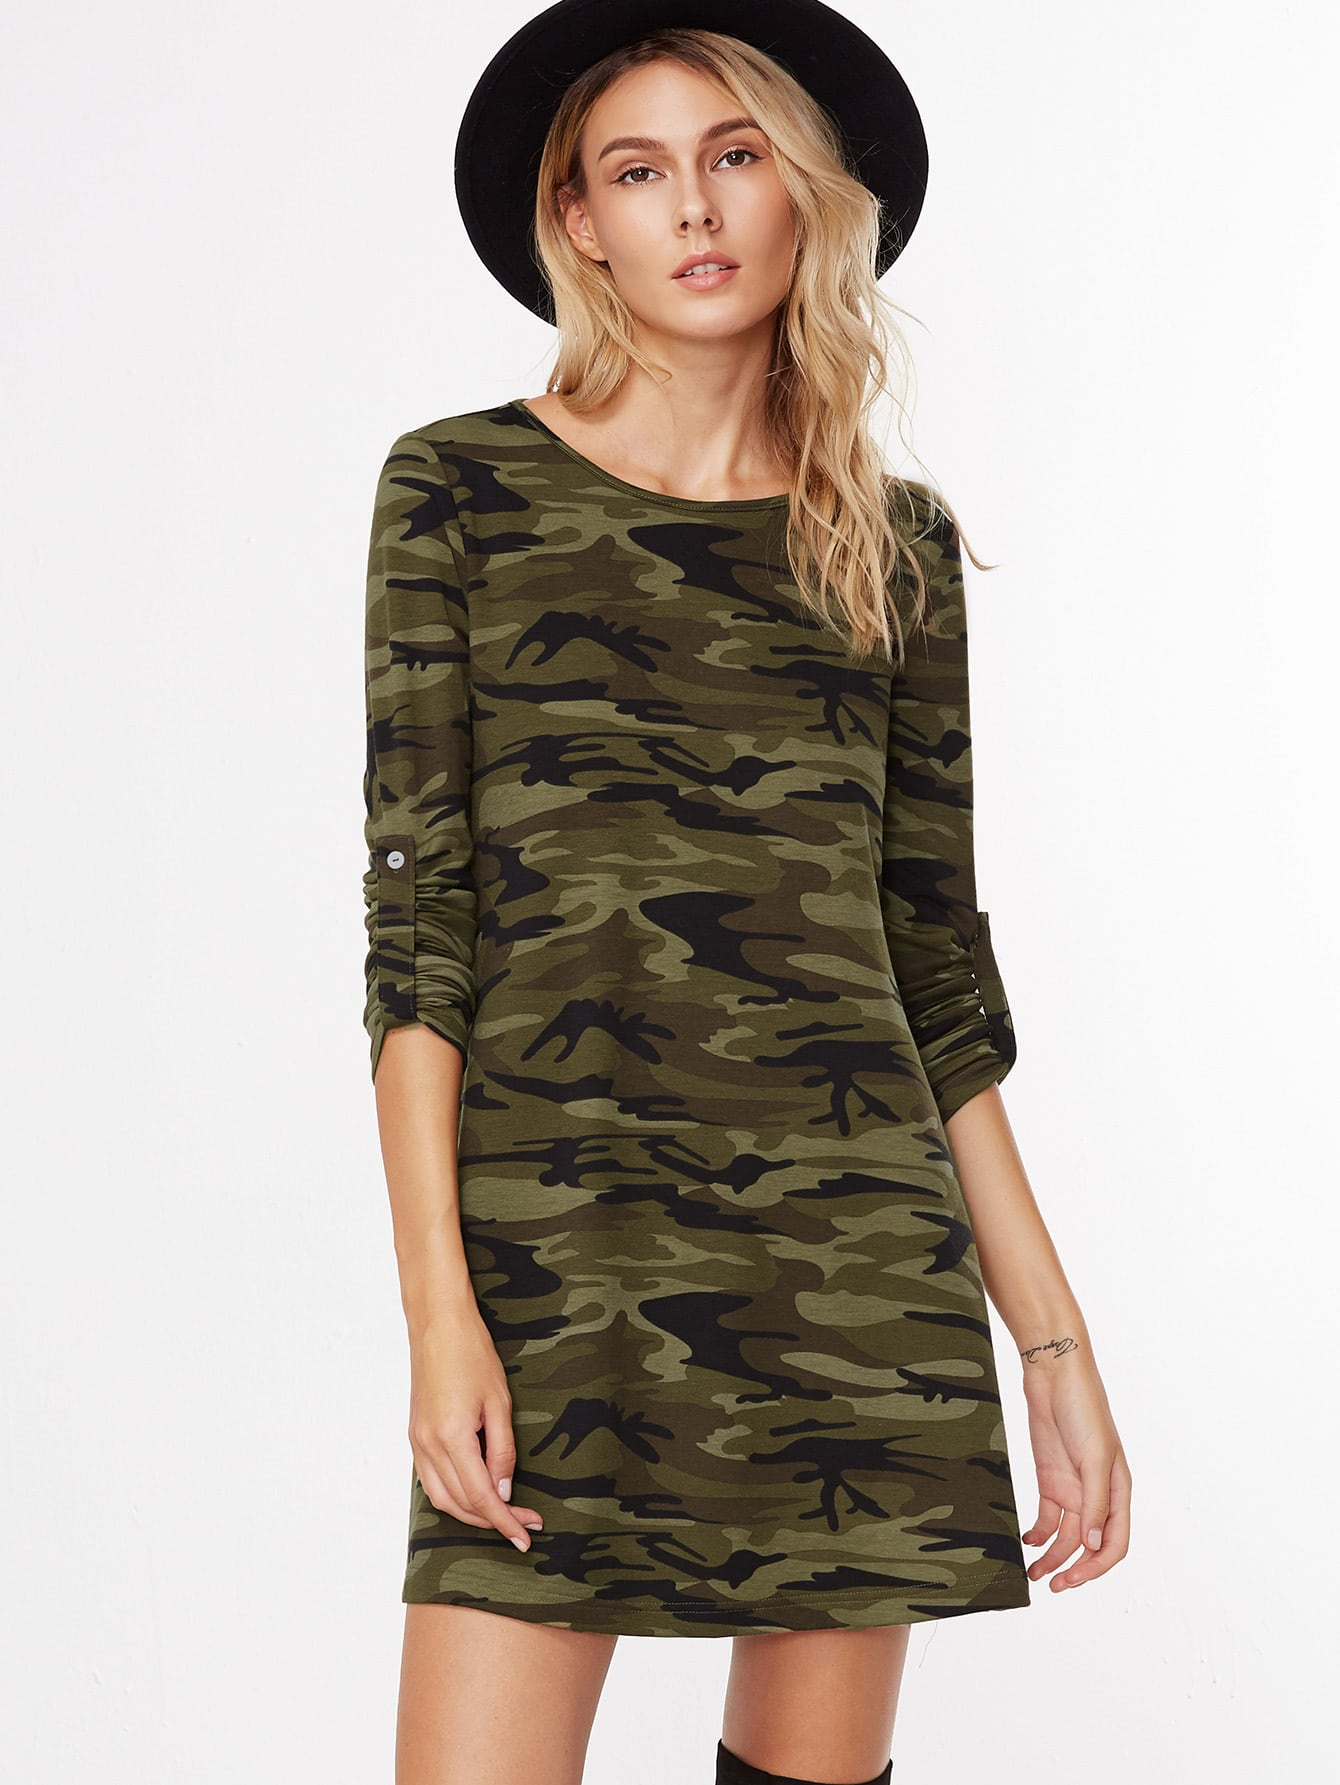 Camouflage Print Roll Sleeve A Line DressCamouflage Print Roll Sleeve A Line Dress<br><br>color: Army Green<br>size: L,M,S,XS